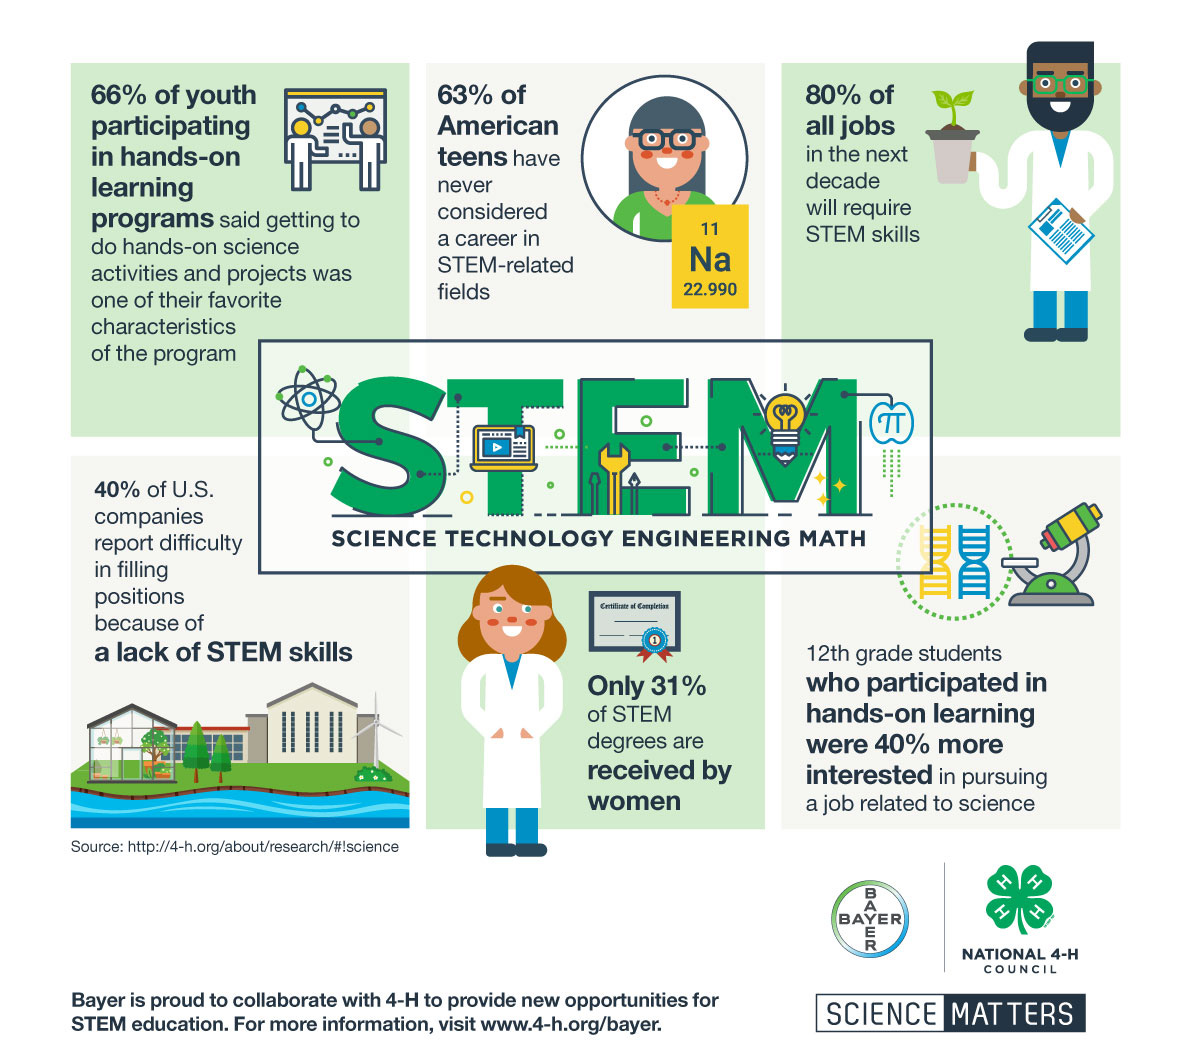 Through Science Matters, Bayer and 4-H will provide new opportunities for STEM education.